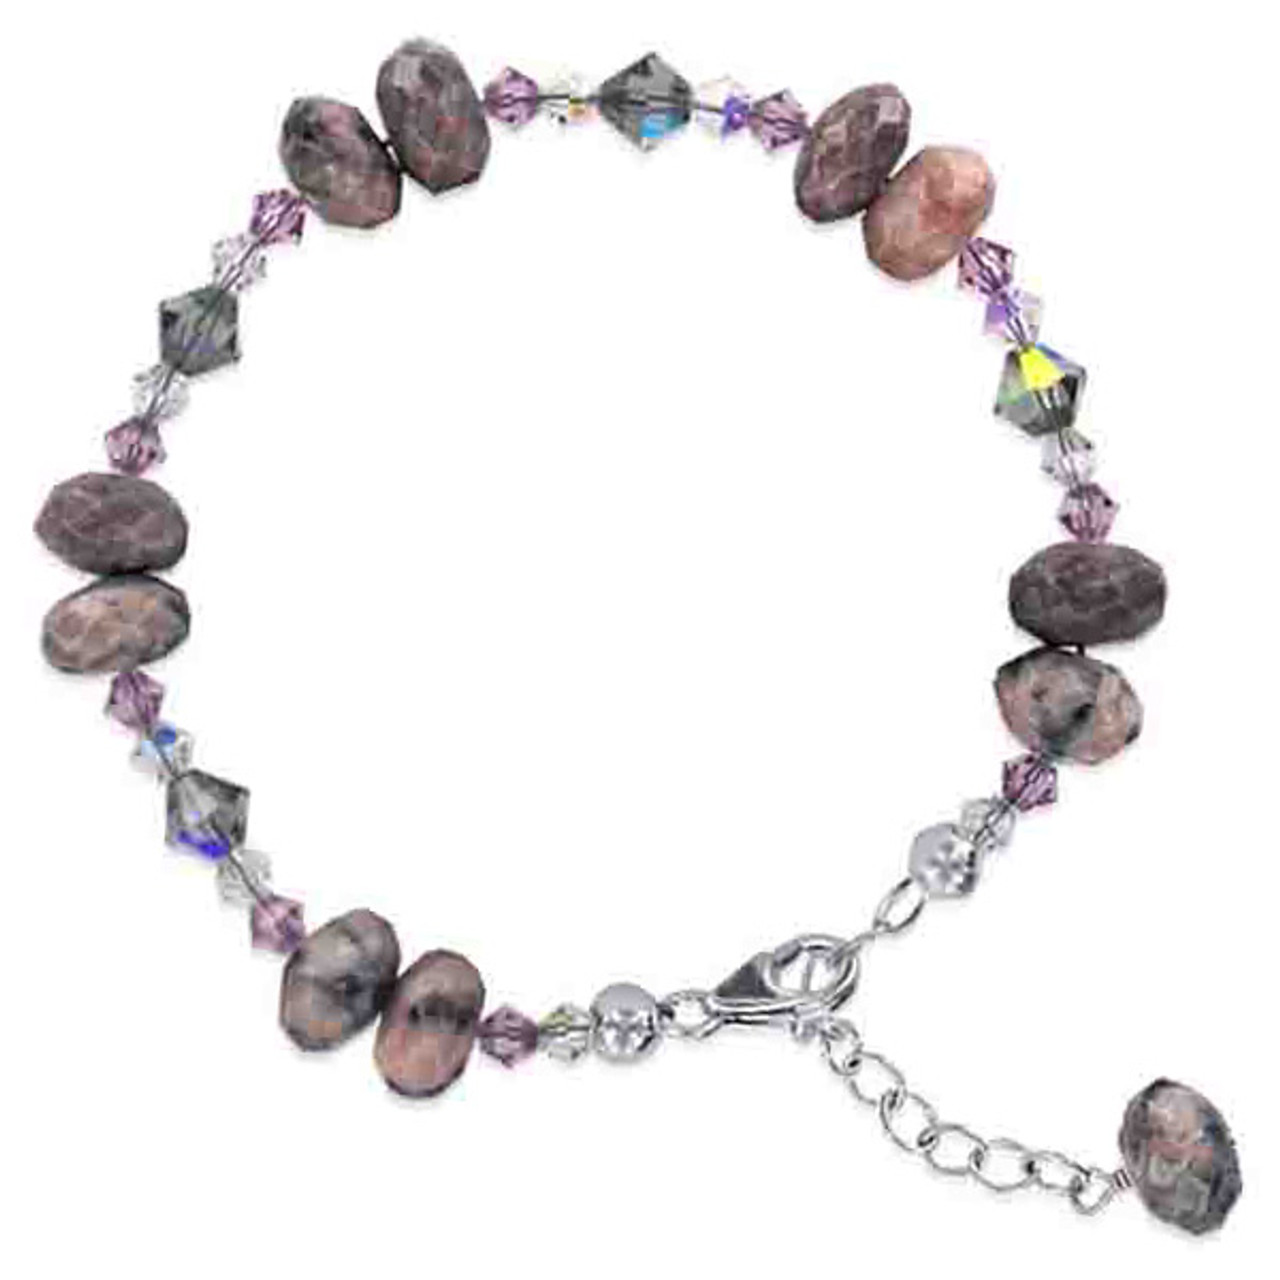 c91a6aed5d03 925 Sterling Silver Swarovski Elements Crystal with Pink Purple and Bead  Handmade Bracelet 7 to 9